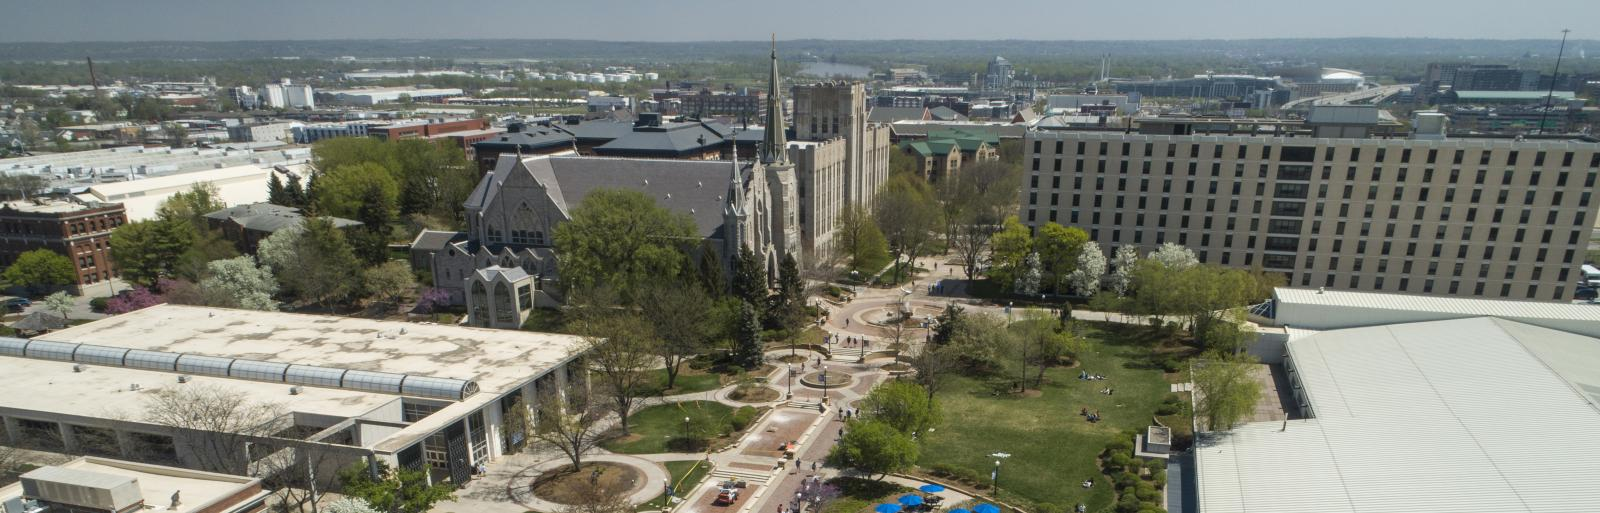 Creighton campus and mall